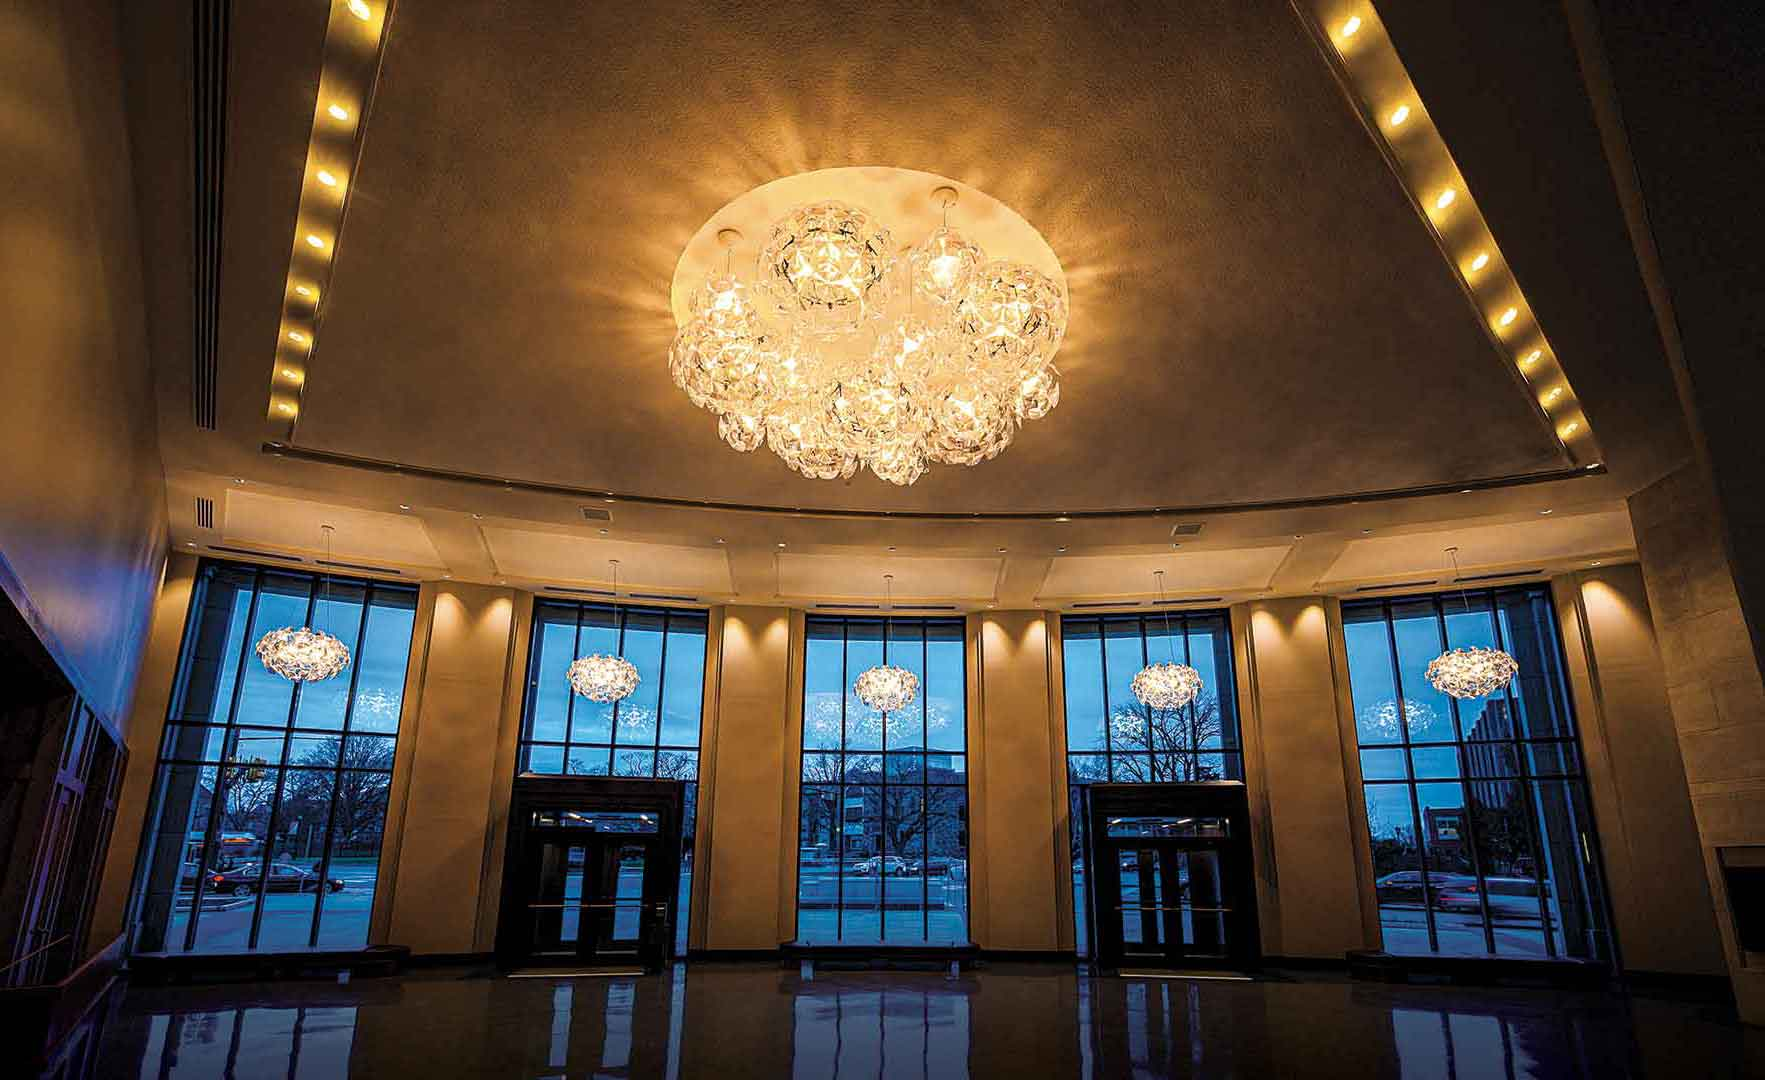 The performing arts center lobby, with a wall of windows looking out on Lancaster Ave and elegant, striking light fixtures